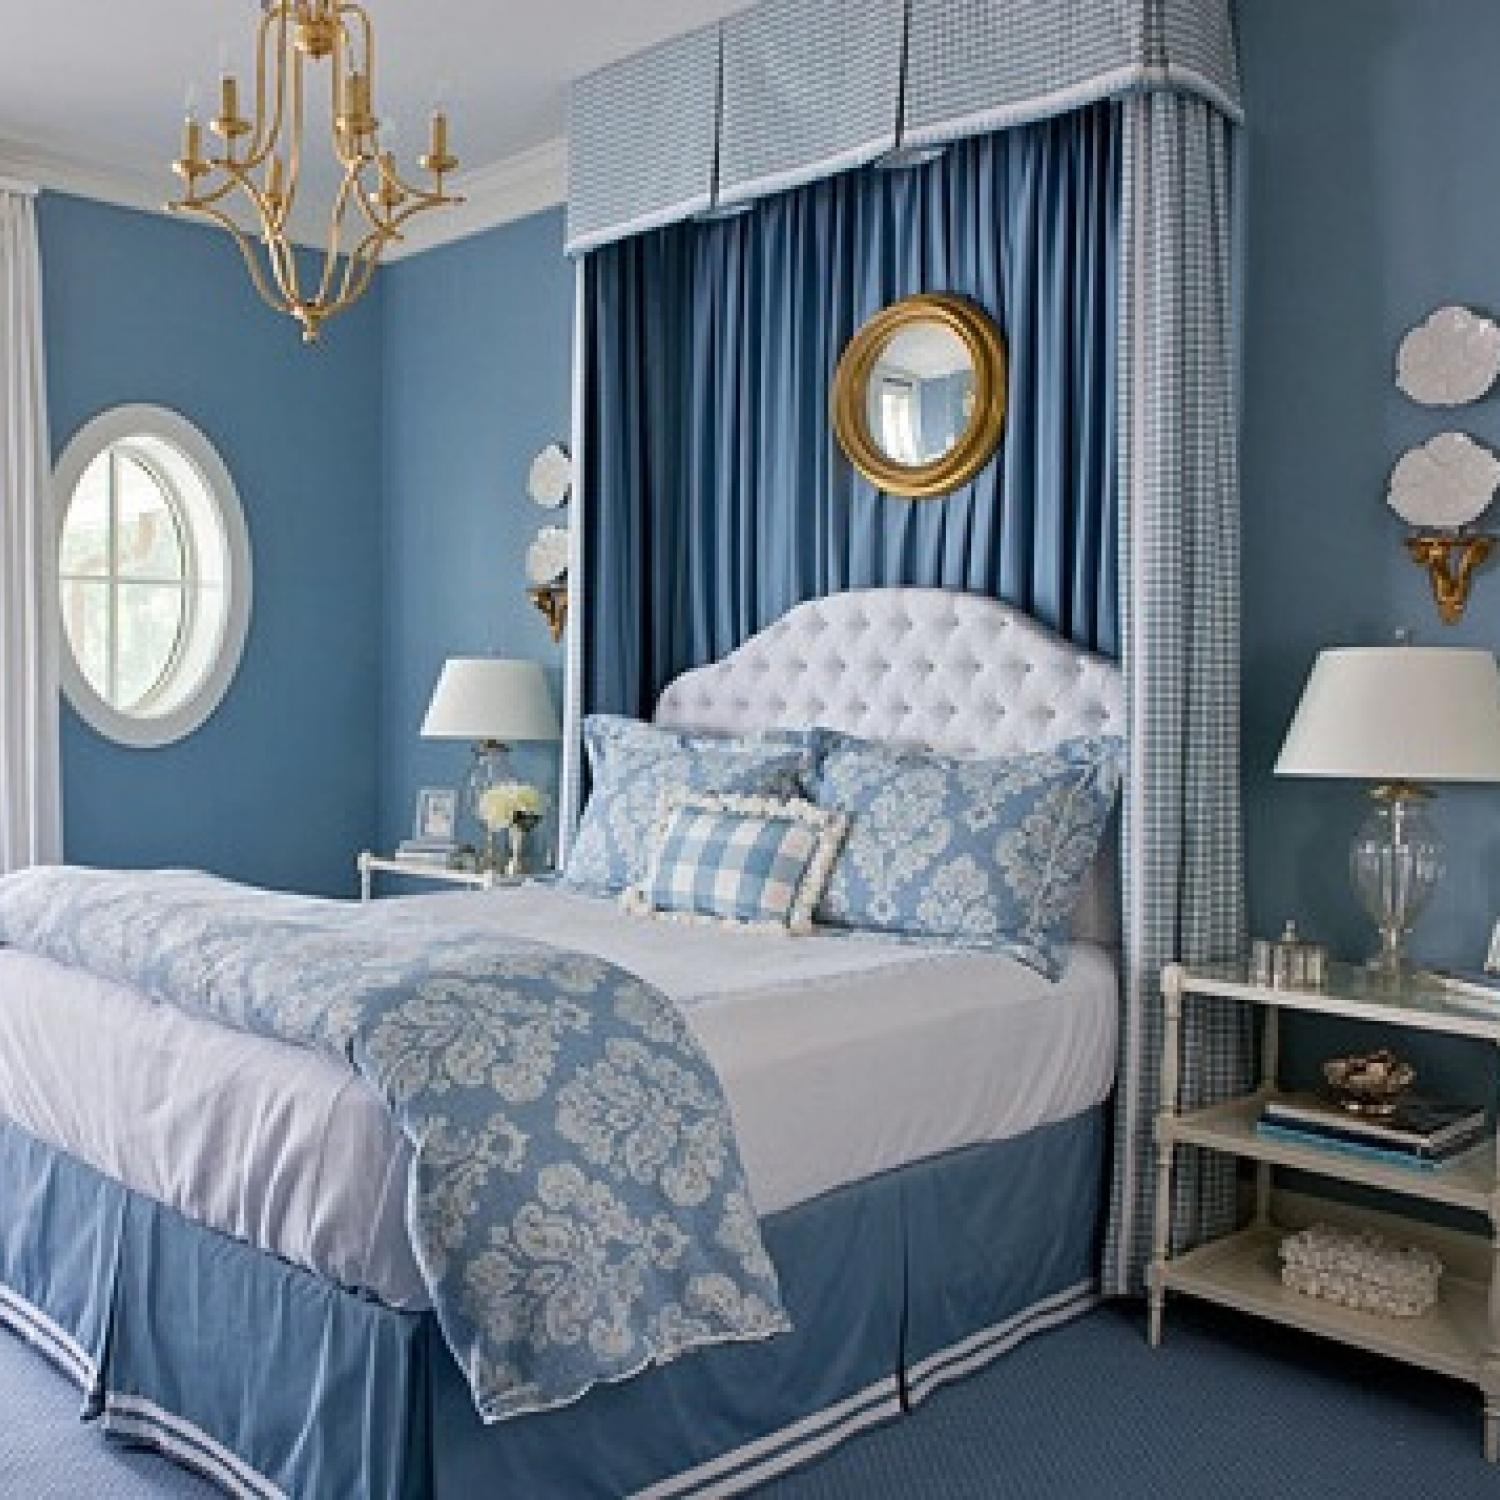 Bedroom Photos Decorating Ideas Beautiful Blue Bedrooms Traditional Home